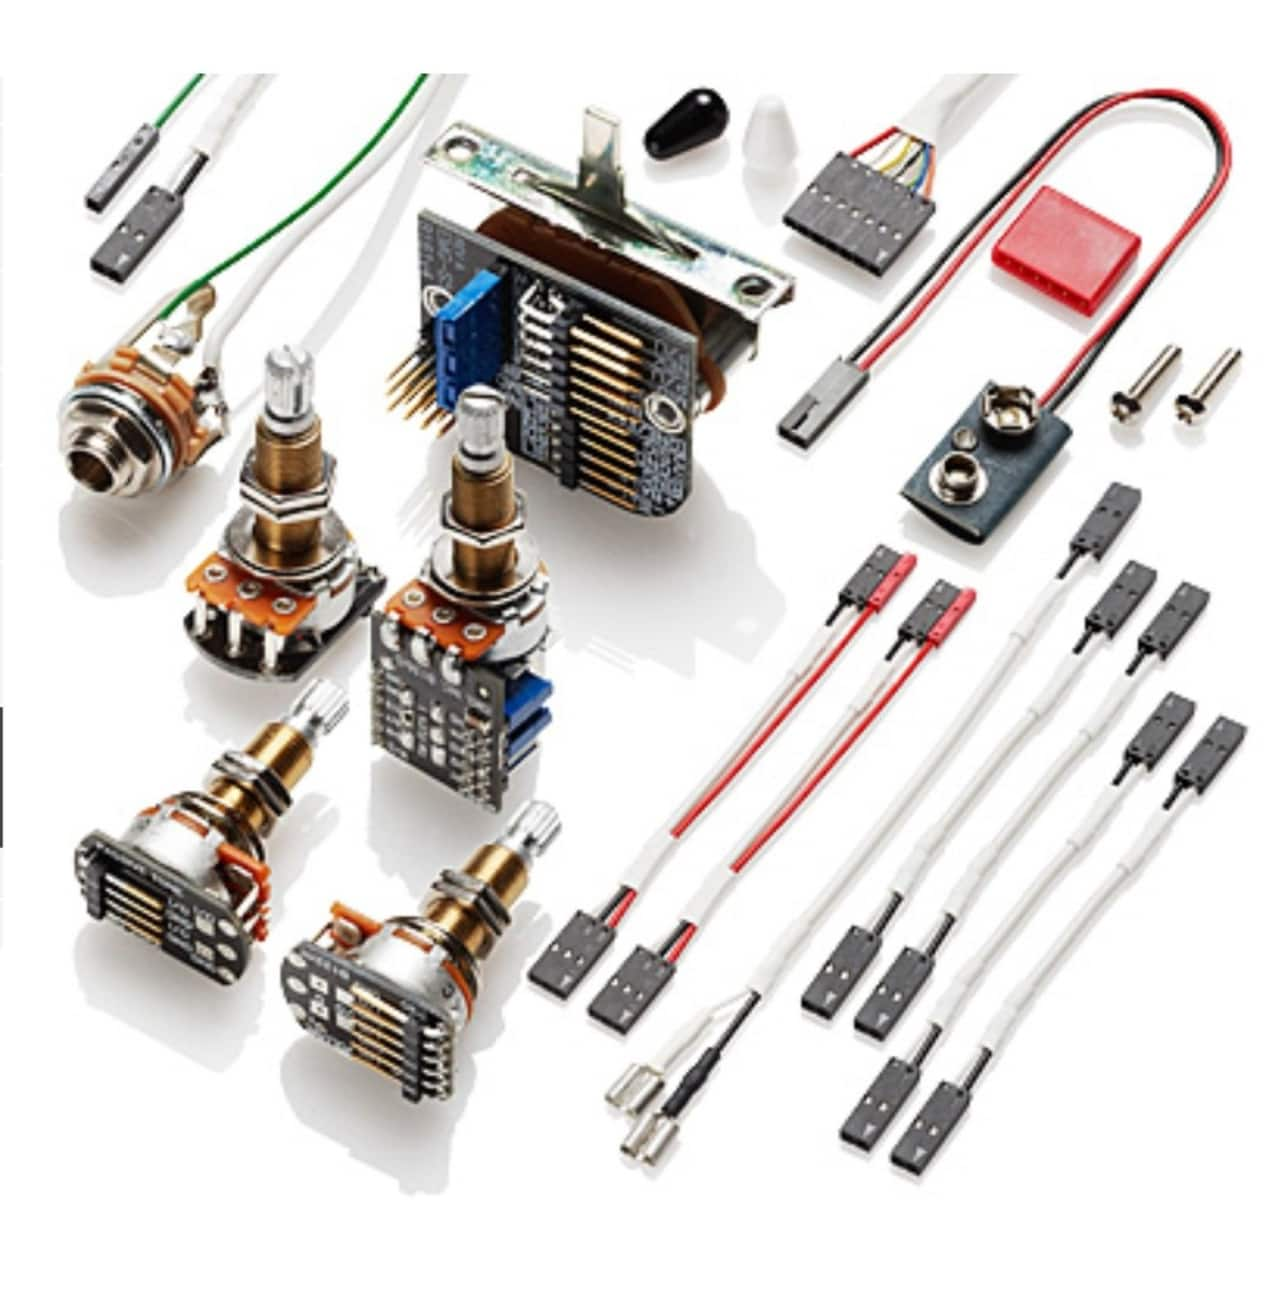 emg wiring guide with 155213 Emg Solderless Wiring Kit For 3 Pu S Long Shaft W Push Pull Pot on Horton C2150 Wiring Diagram as well Ibanez Mikro Bass Wiring Diagram furthermore Kenwood Ddx310bt Wiring Diagram additionally 6305176 Emg Emg 81 7 Brushed Chrome in addition Emg Hz Wiring Diagram Color.